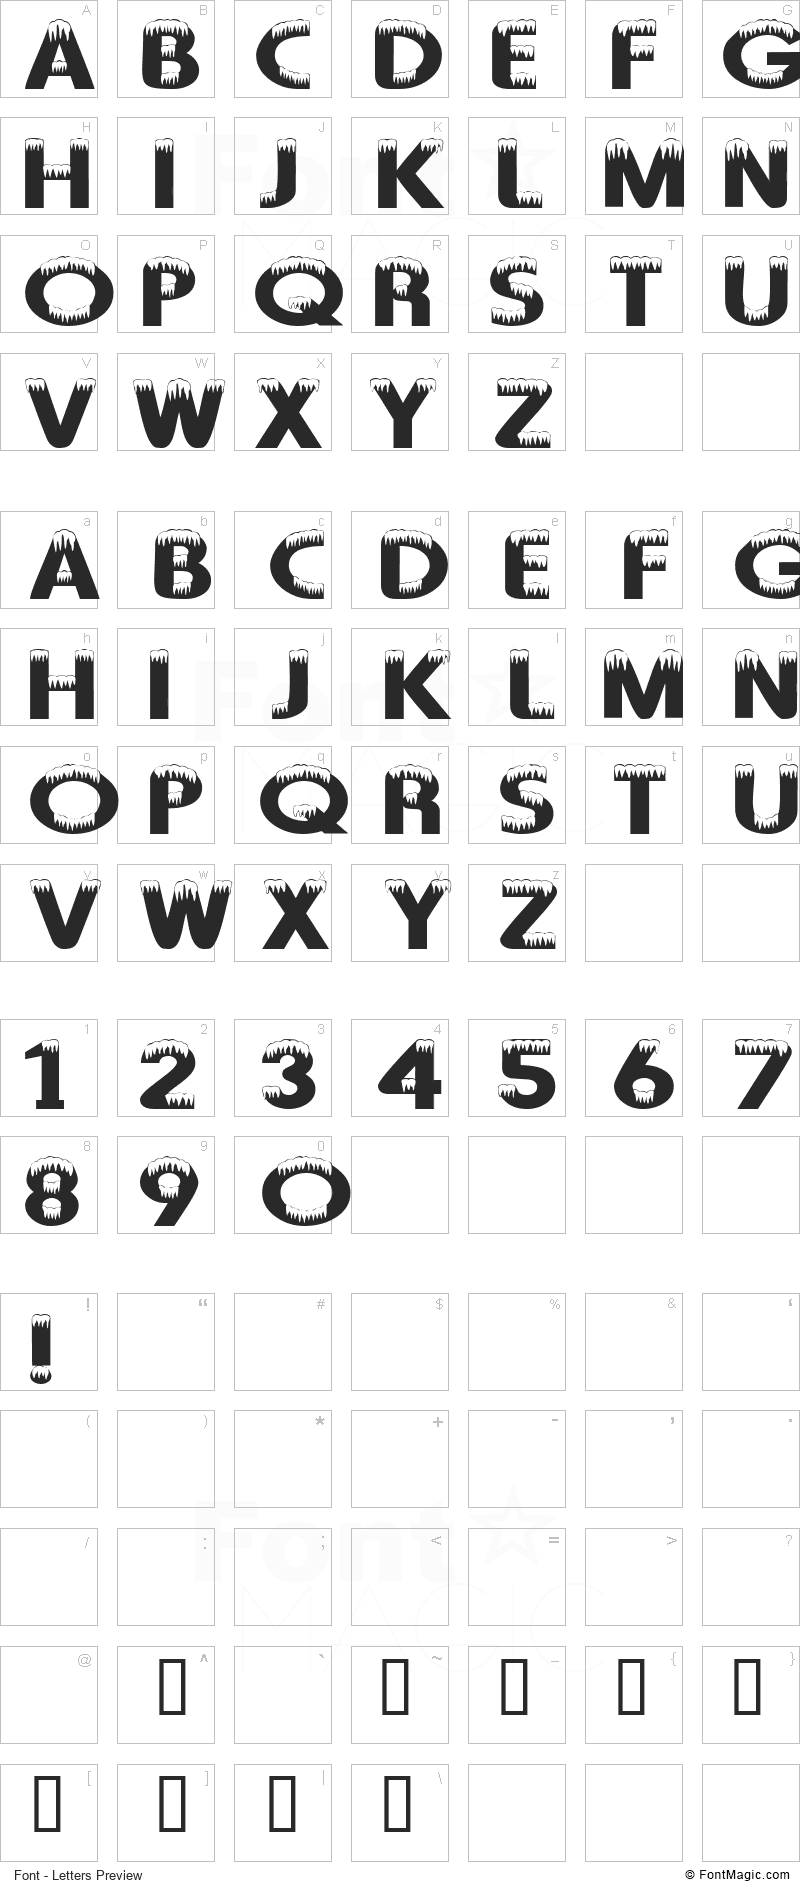 101! Arctic Blast Font - All Latters Preview Chart